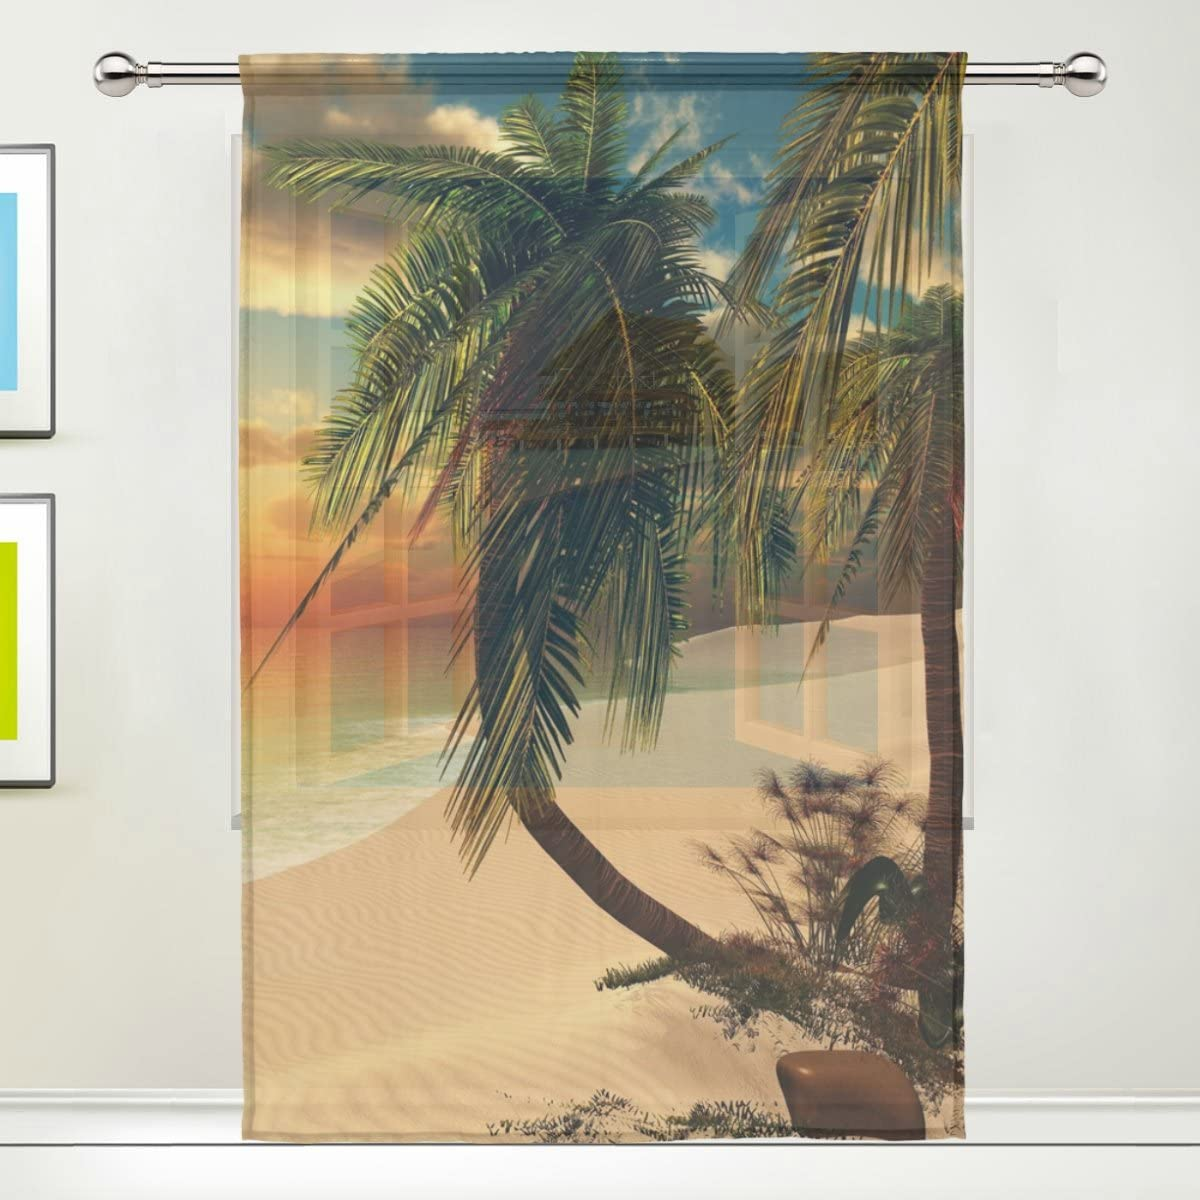 XMCL Window Sheer Curtains Sunset in The Tropical Beach Decorative Extra Wide for Living Room Bedroom Kitchen Window Voile Panel 78-84 Inch Long